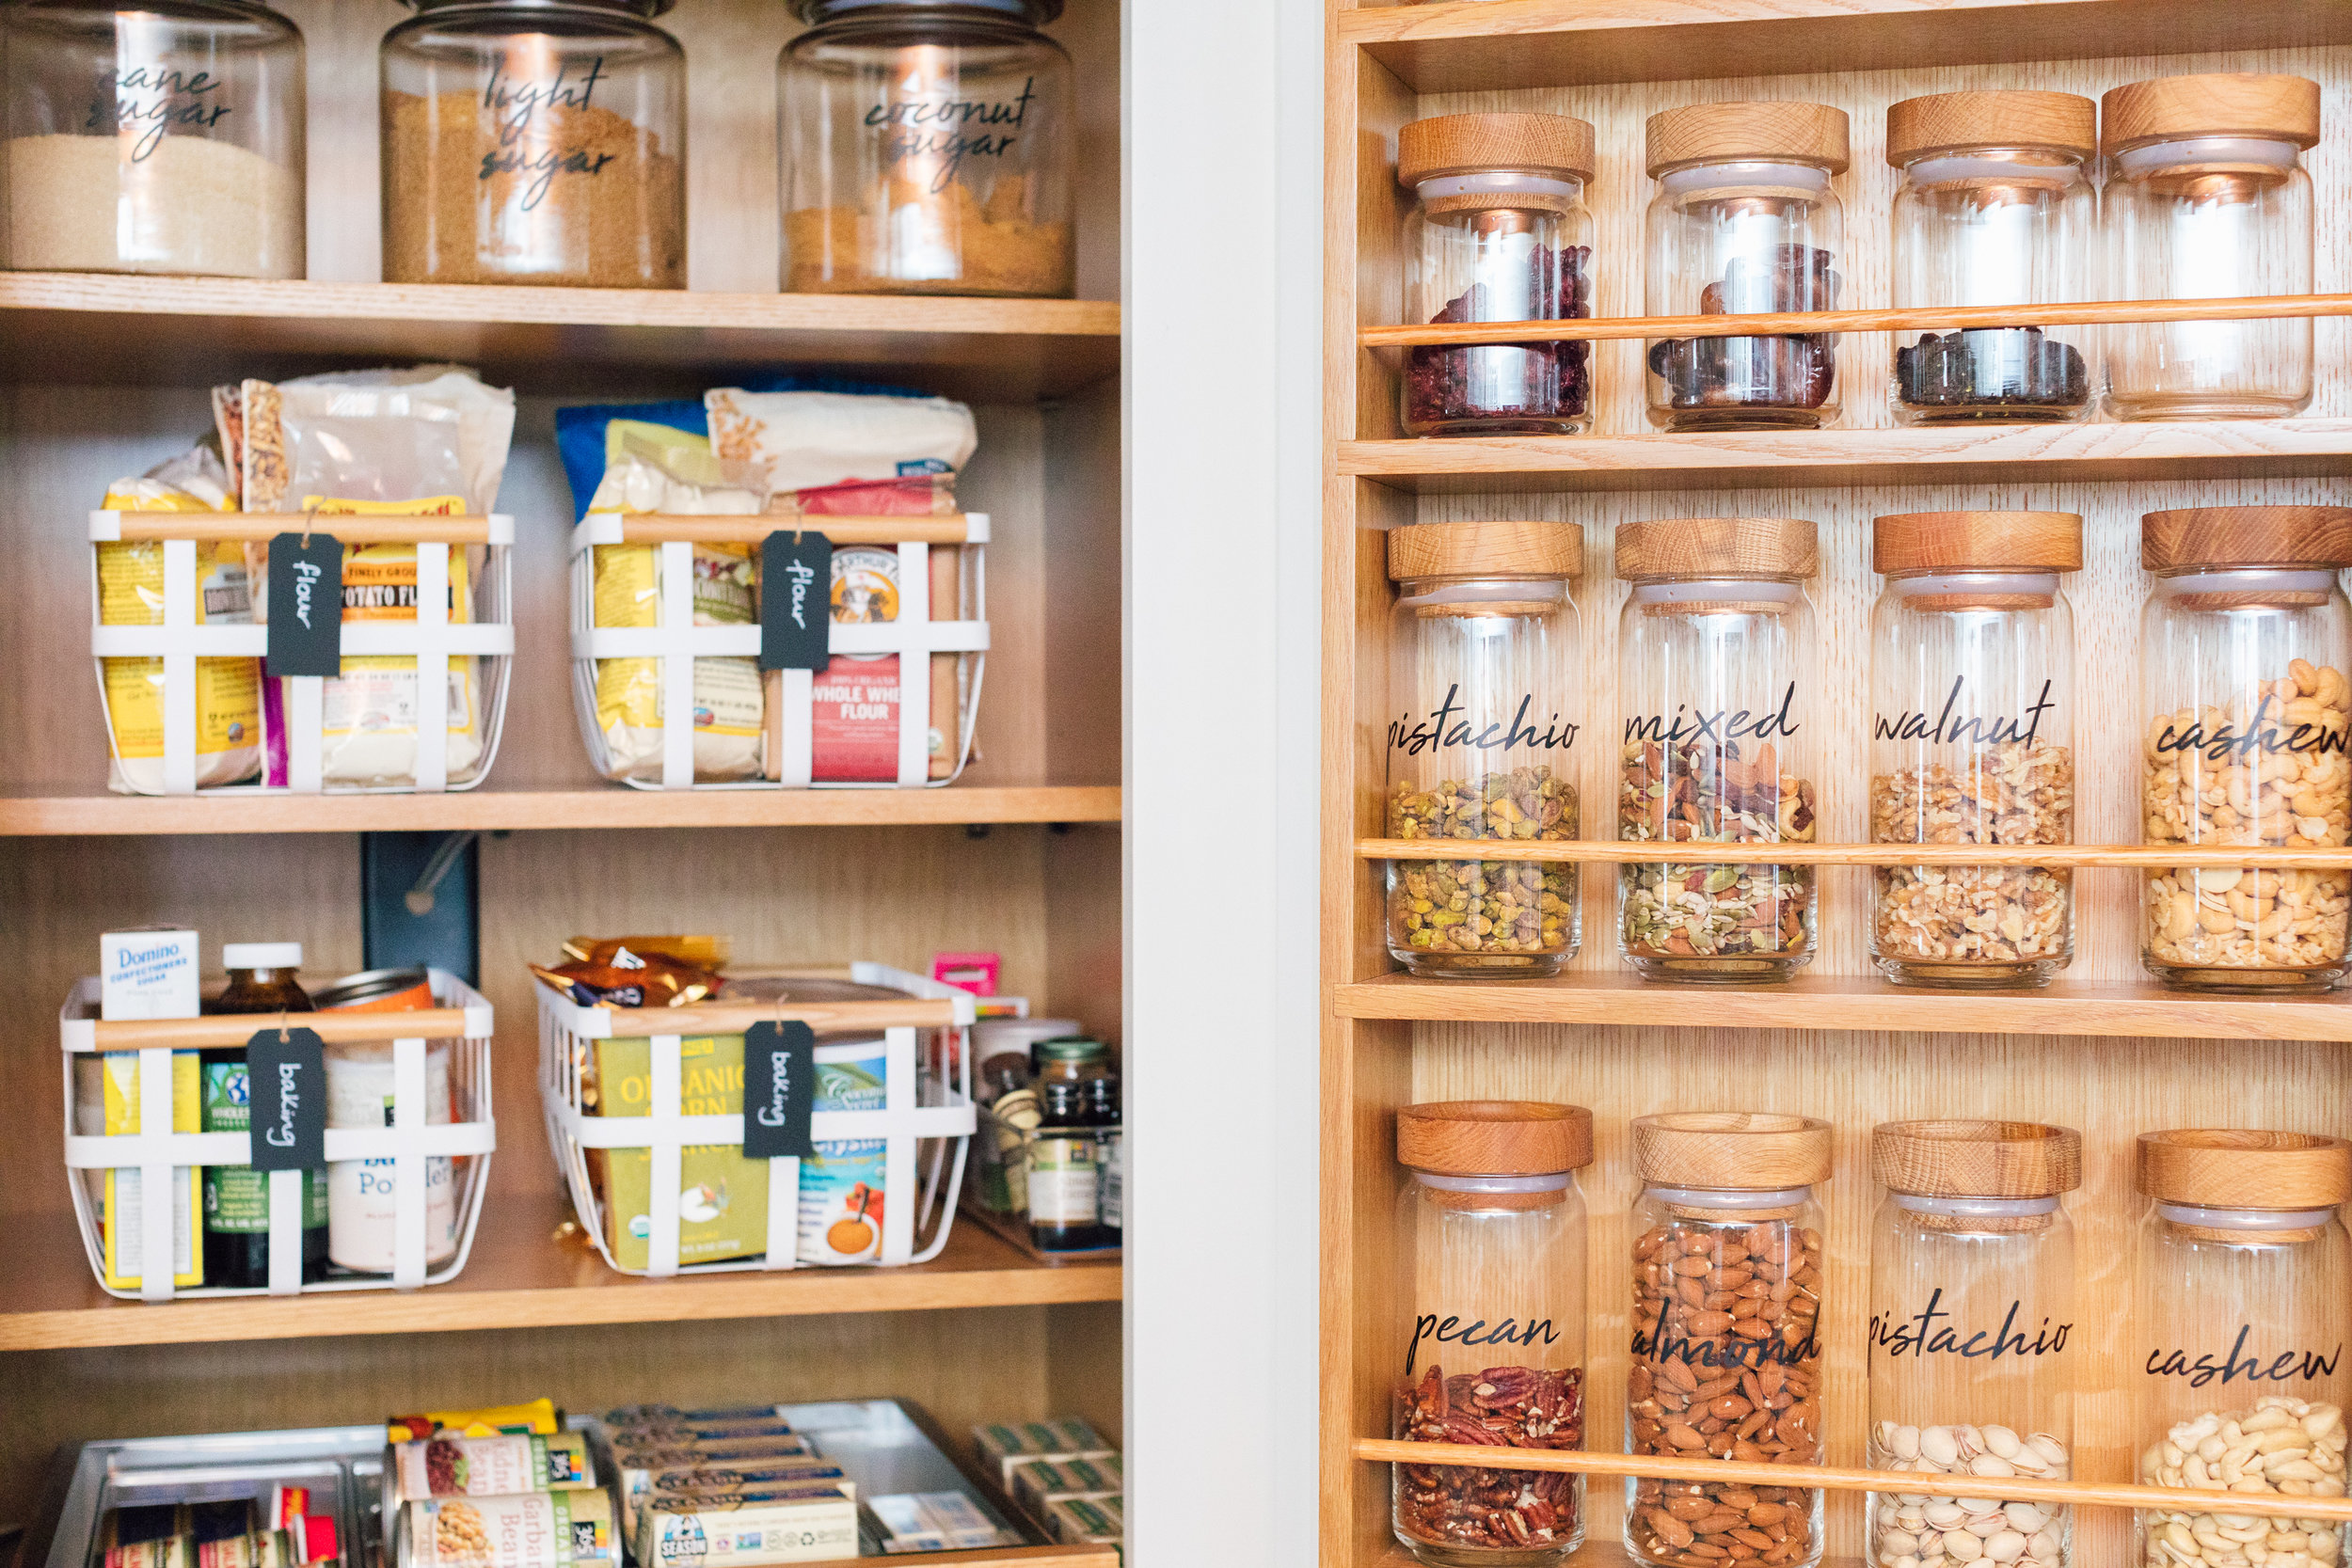 haven home organizer organize pantry design kitchen interior